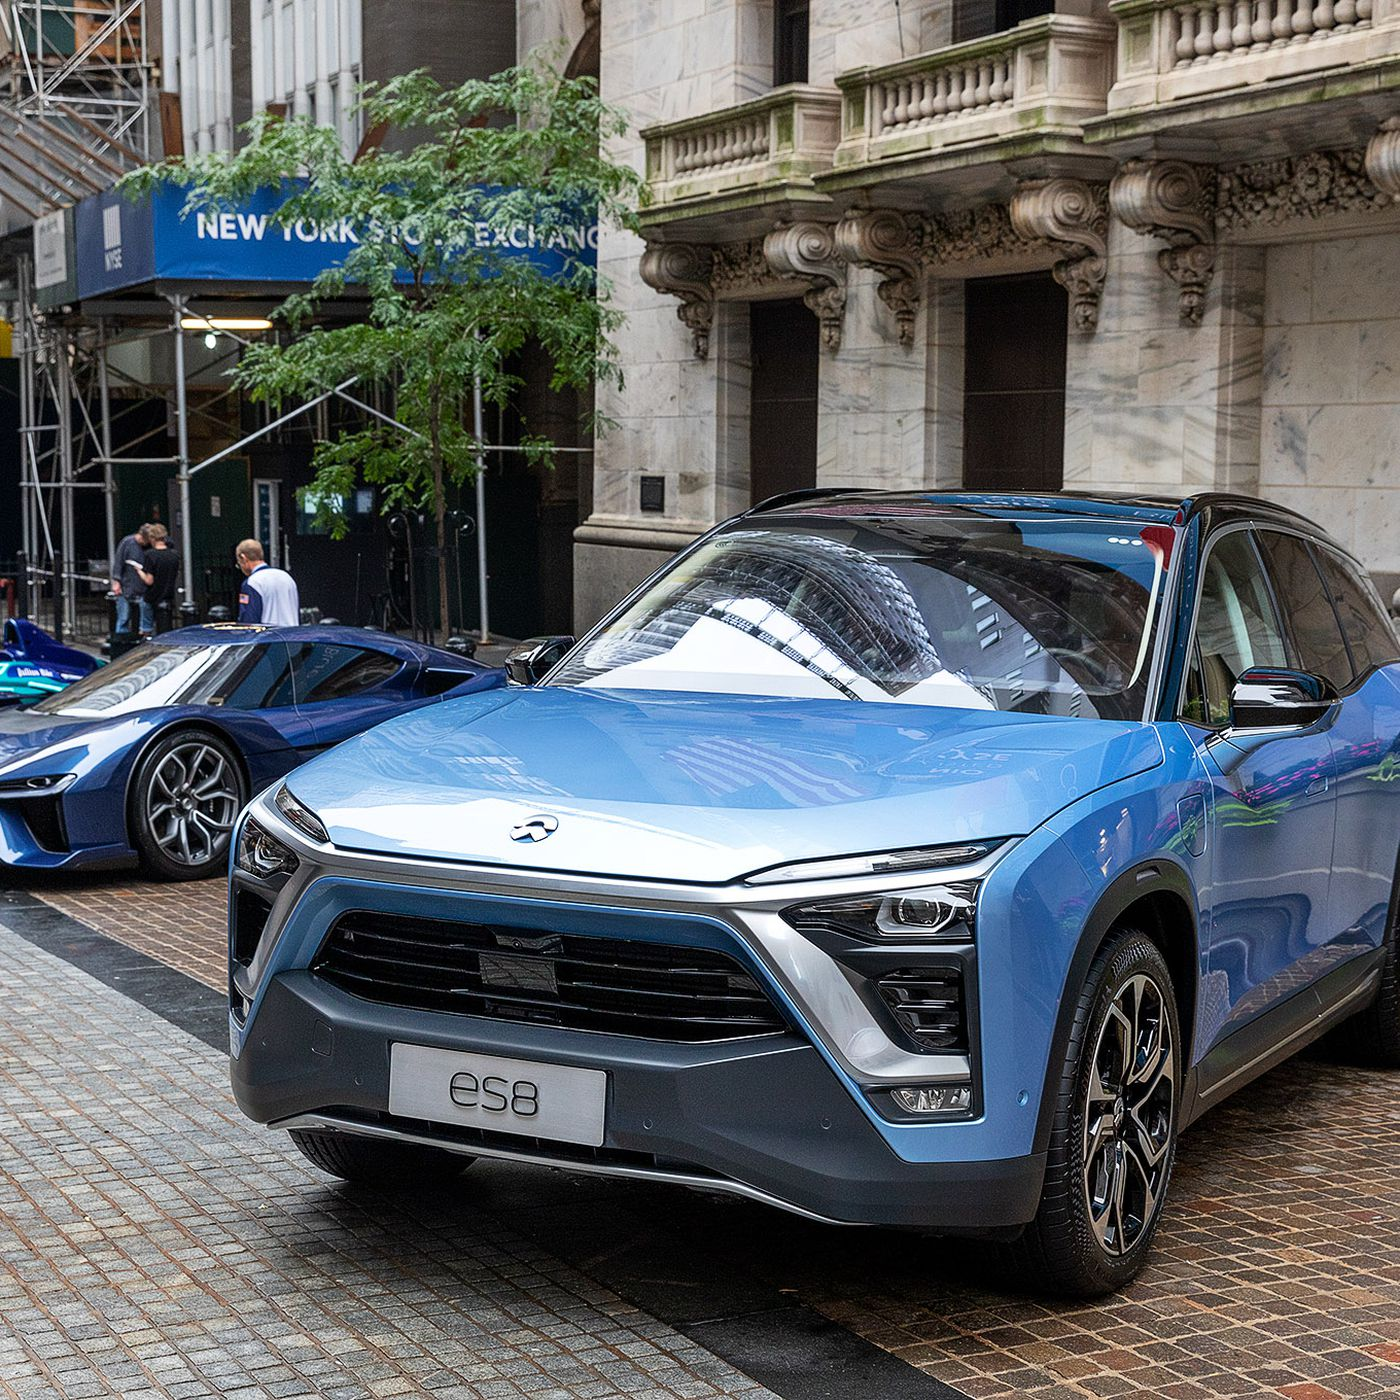 Make Your Own Car >> Ev Startup Nio Abandons Plan To Make Its Own Cars The Verge